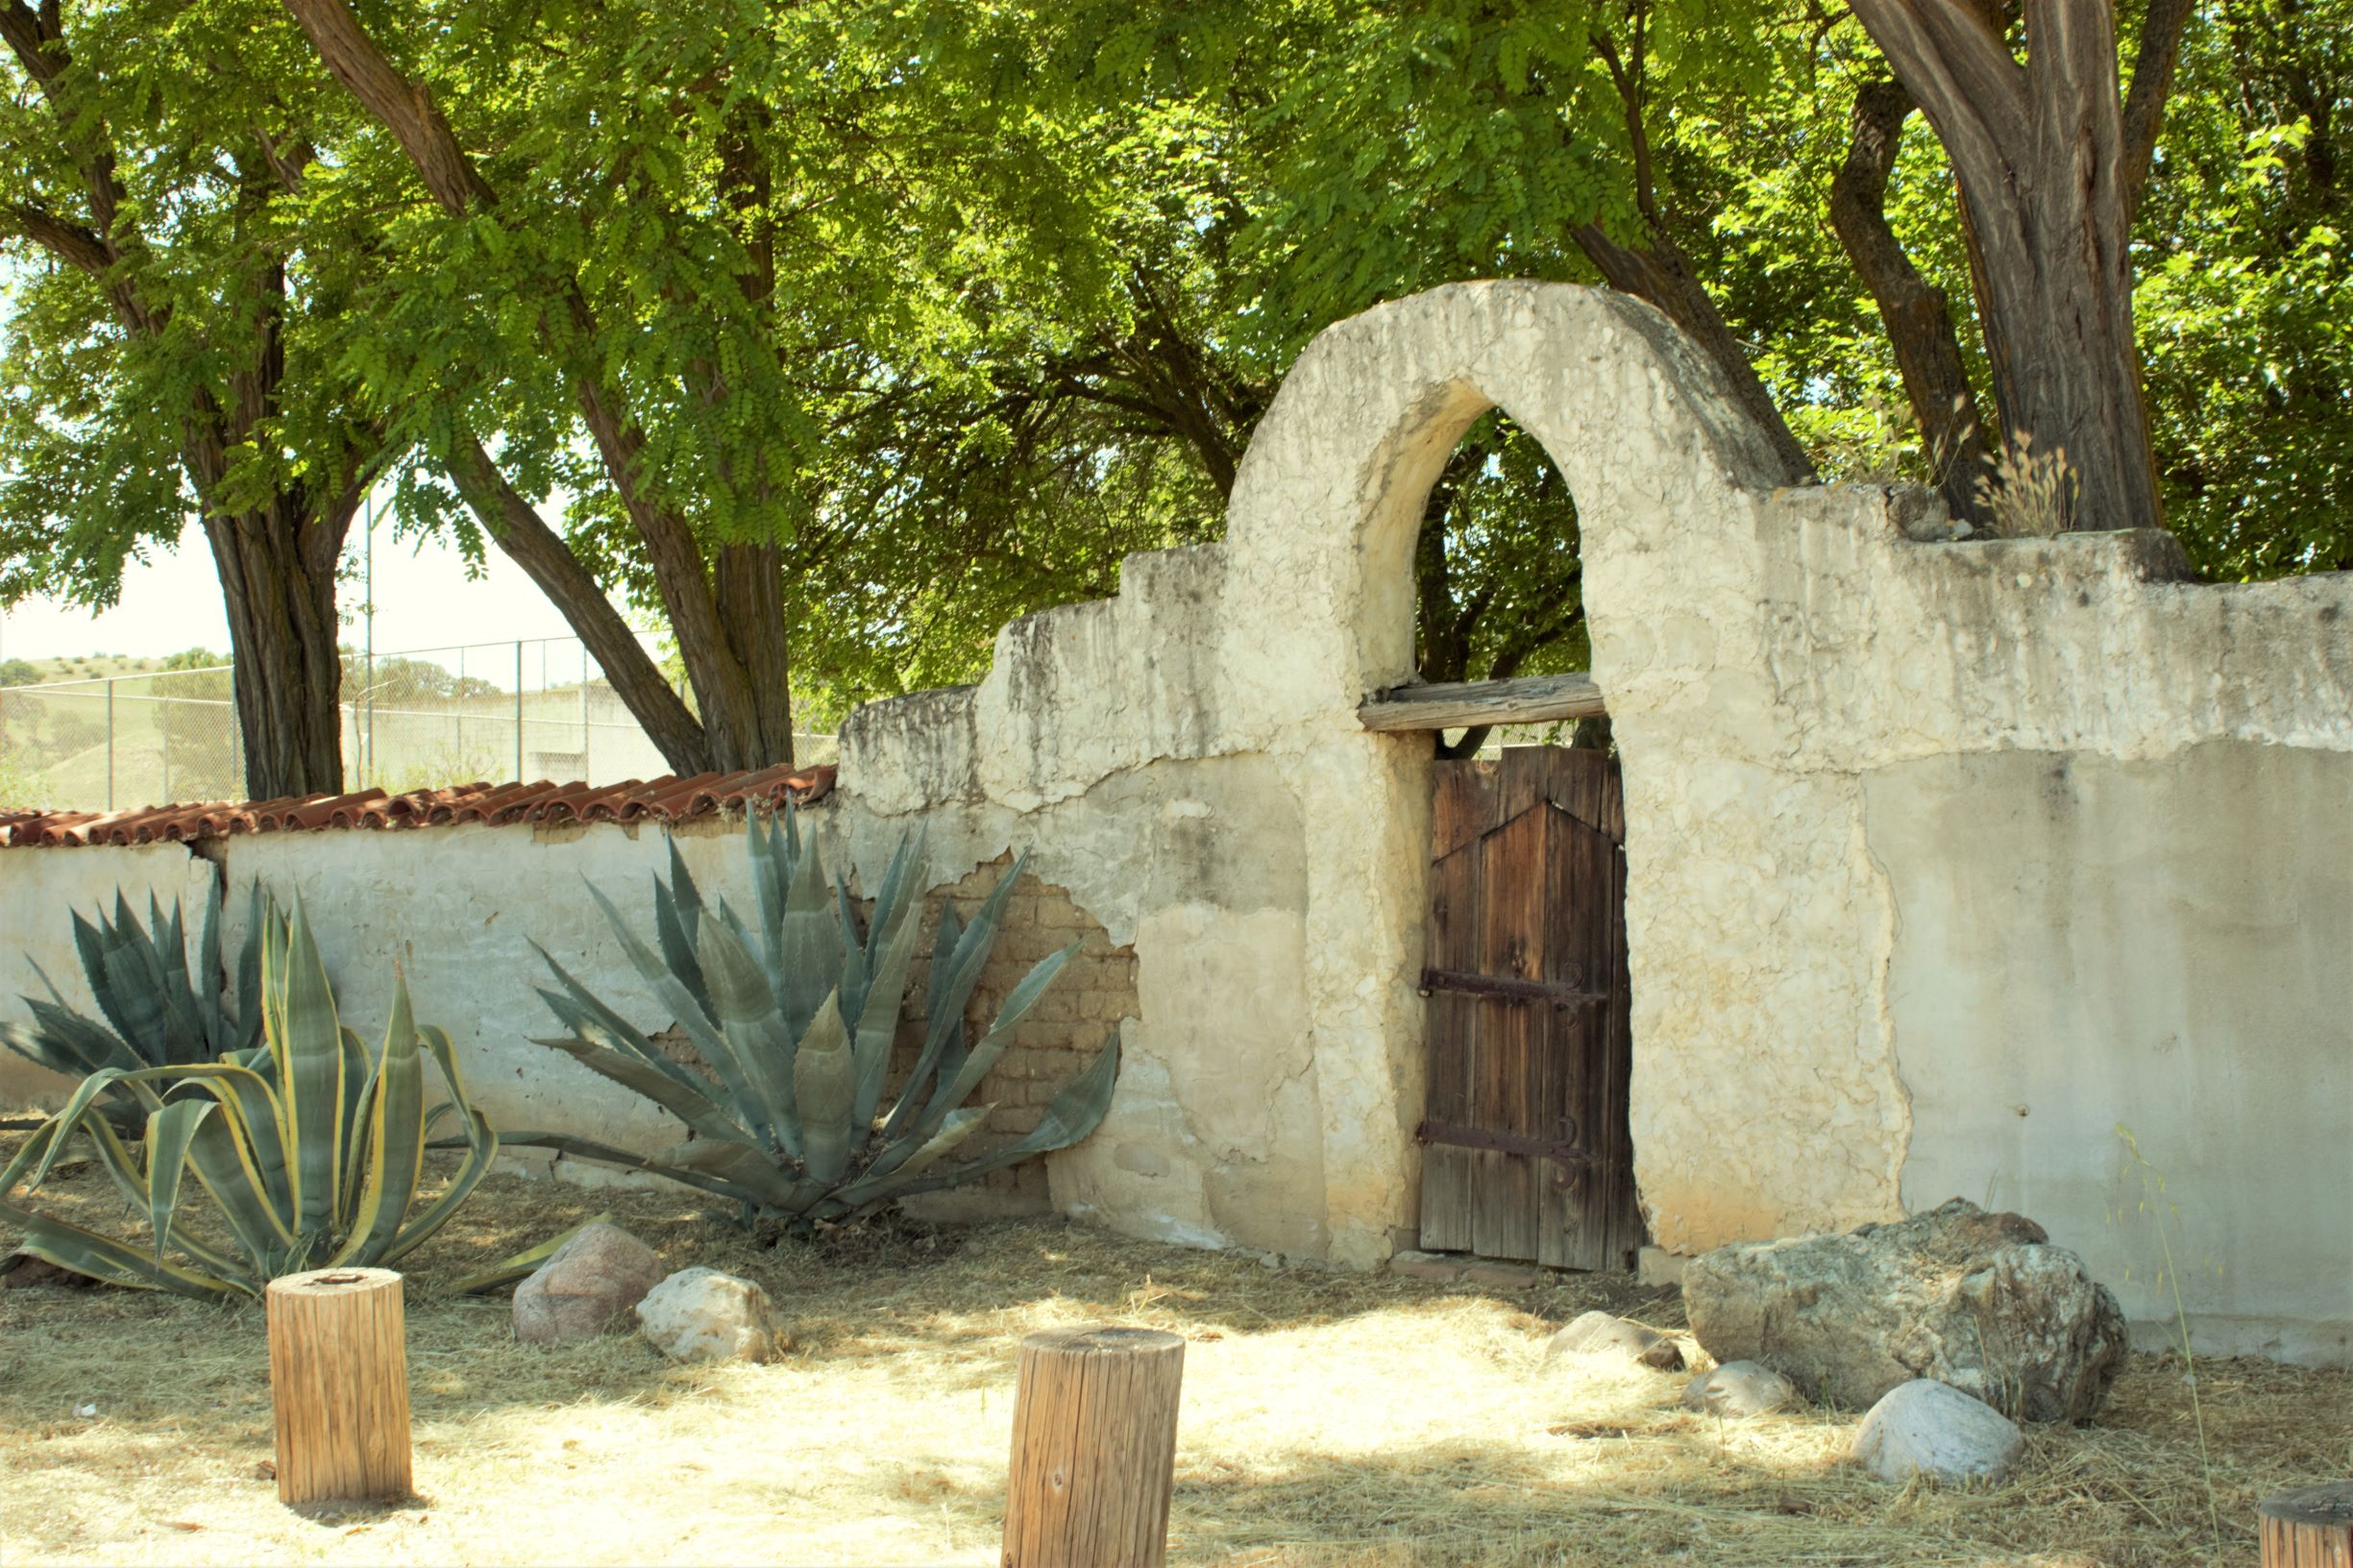 Mission San Miguel:  The Crumbling Walls, Doorways, and Passages.